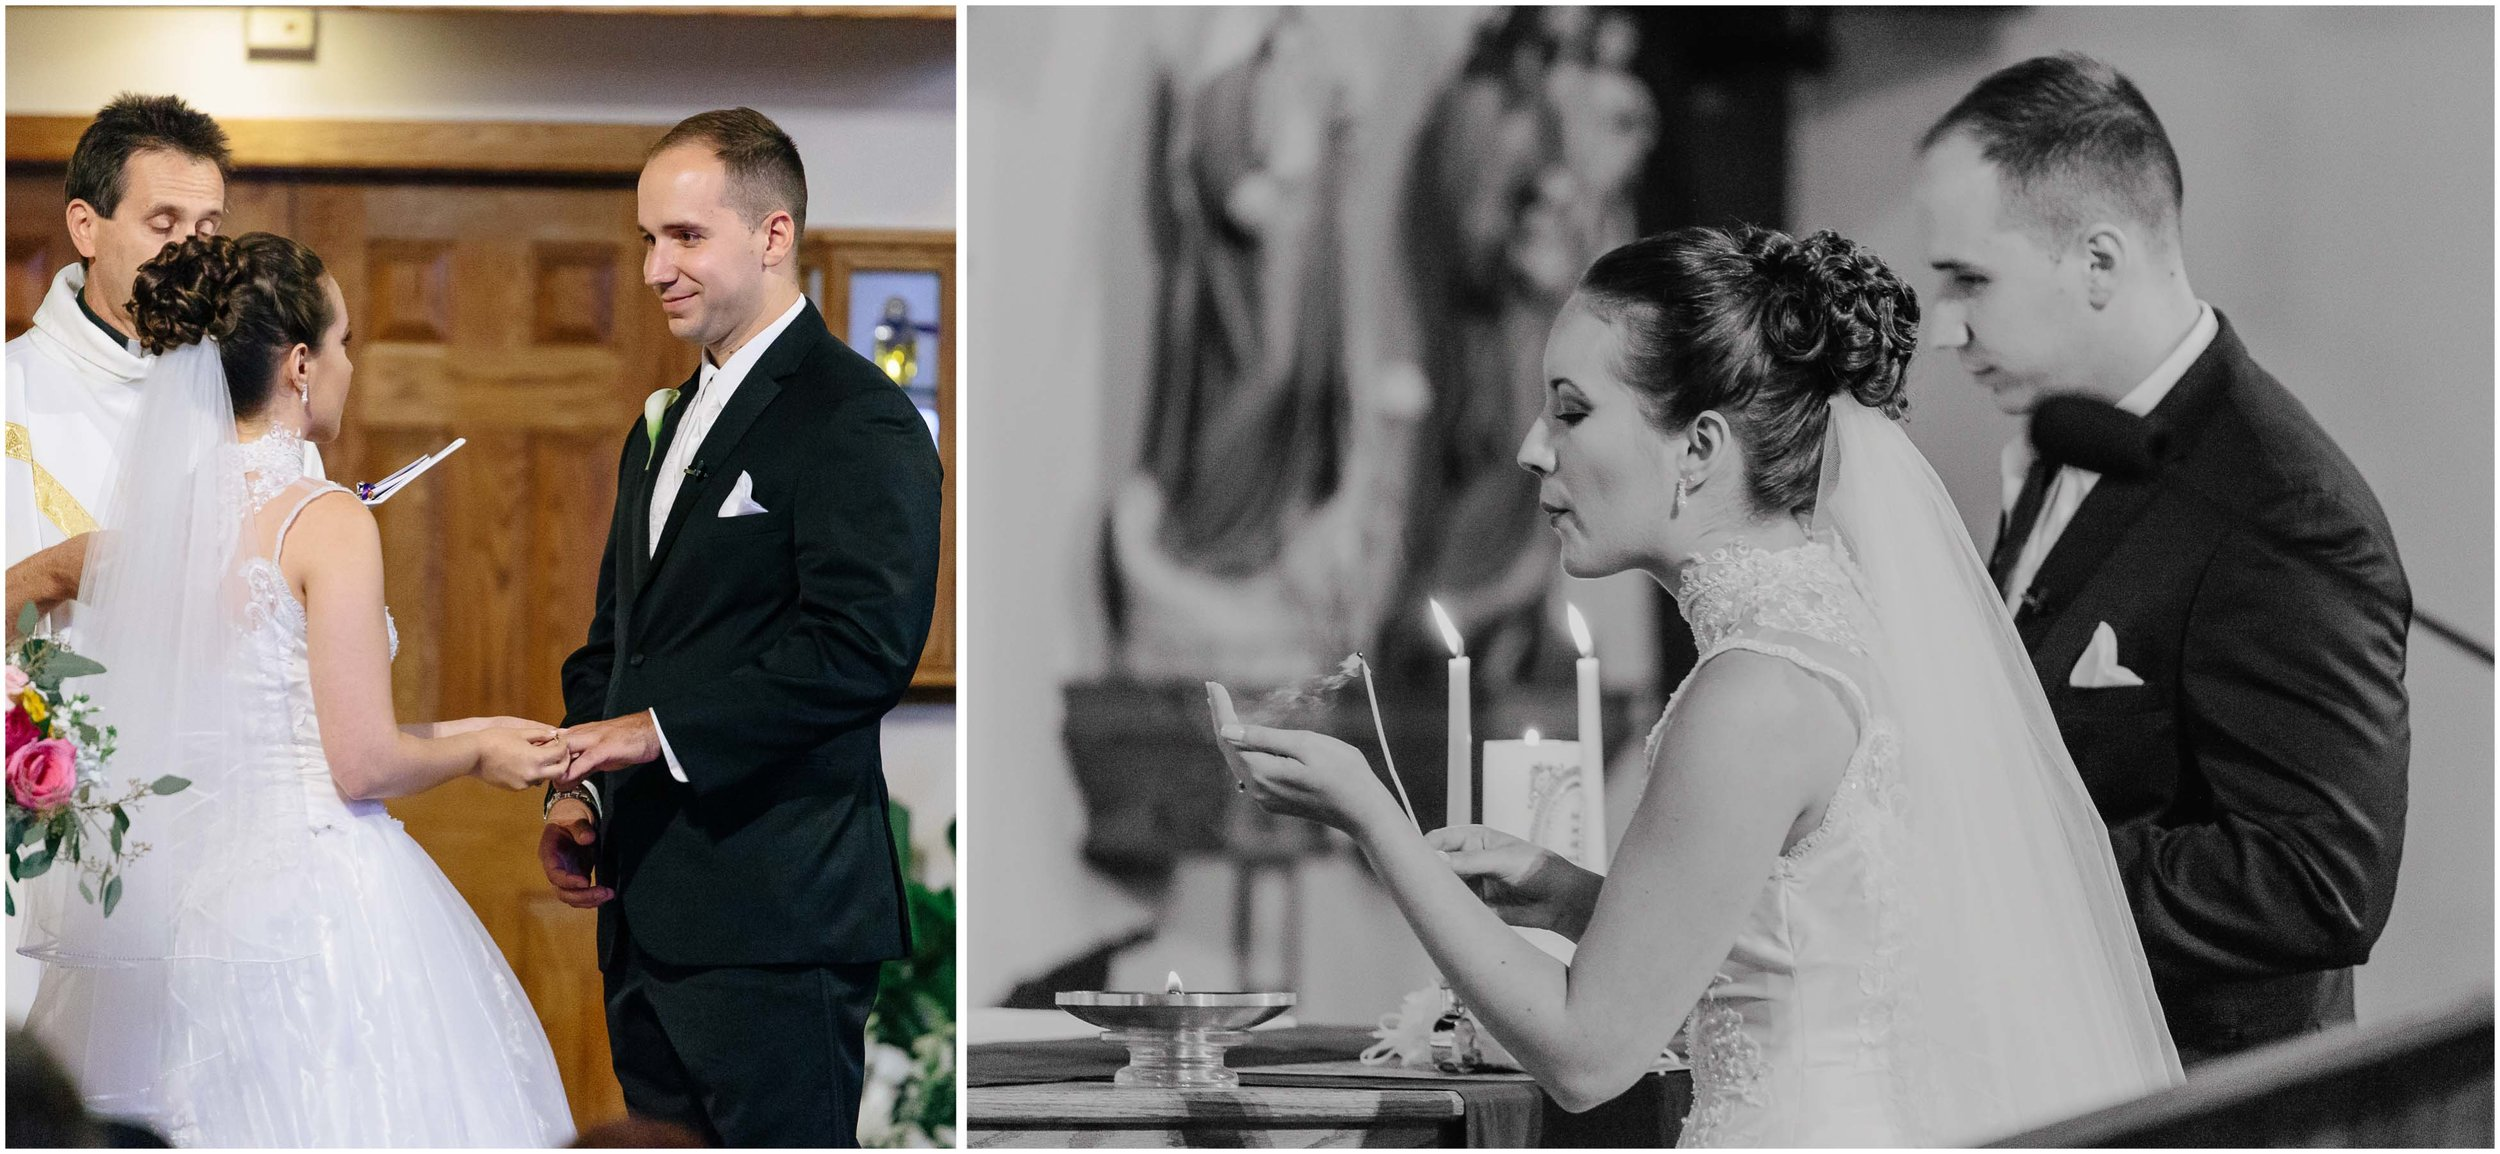 Chic New Hampshire Wedding at Manchester Country Club Bedford - exchanging rings and unity candle